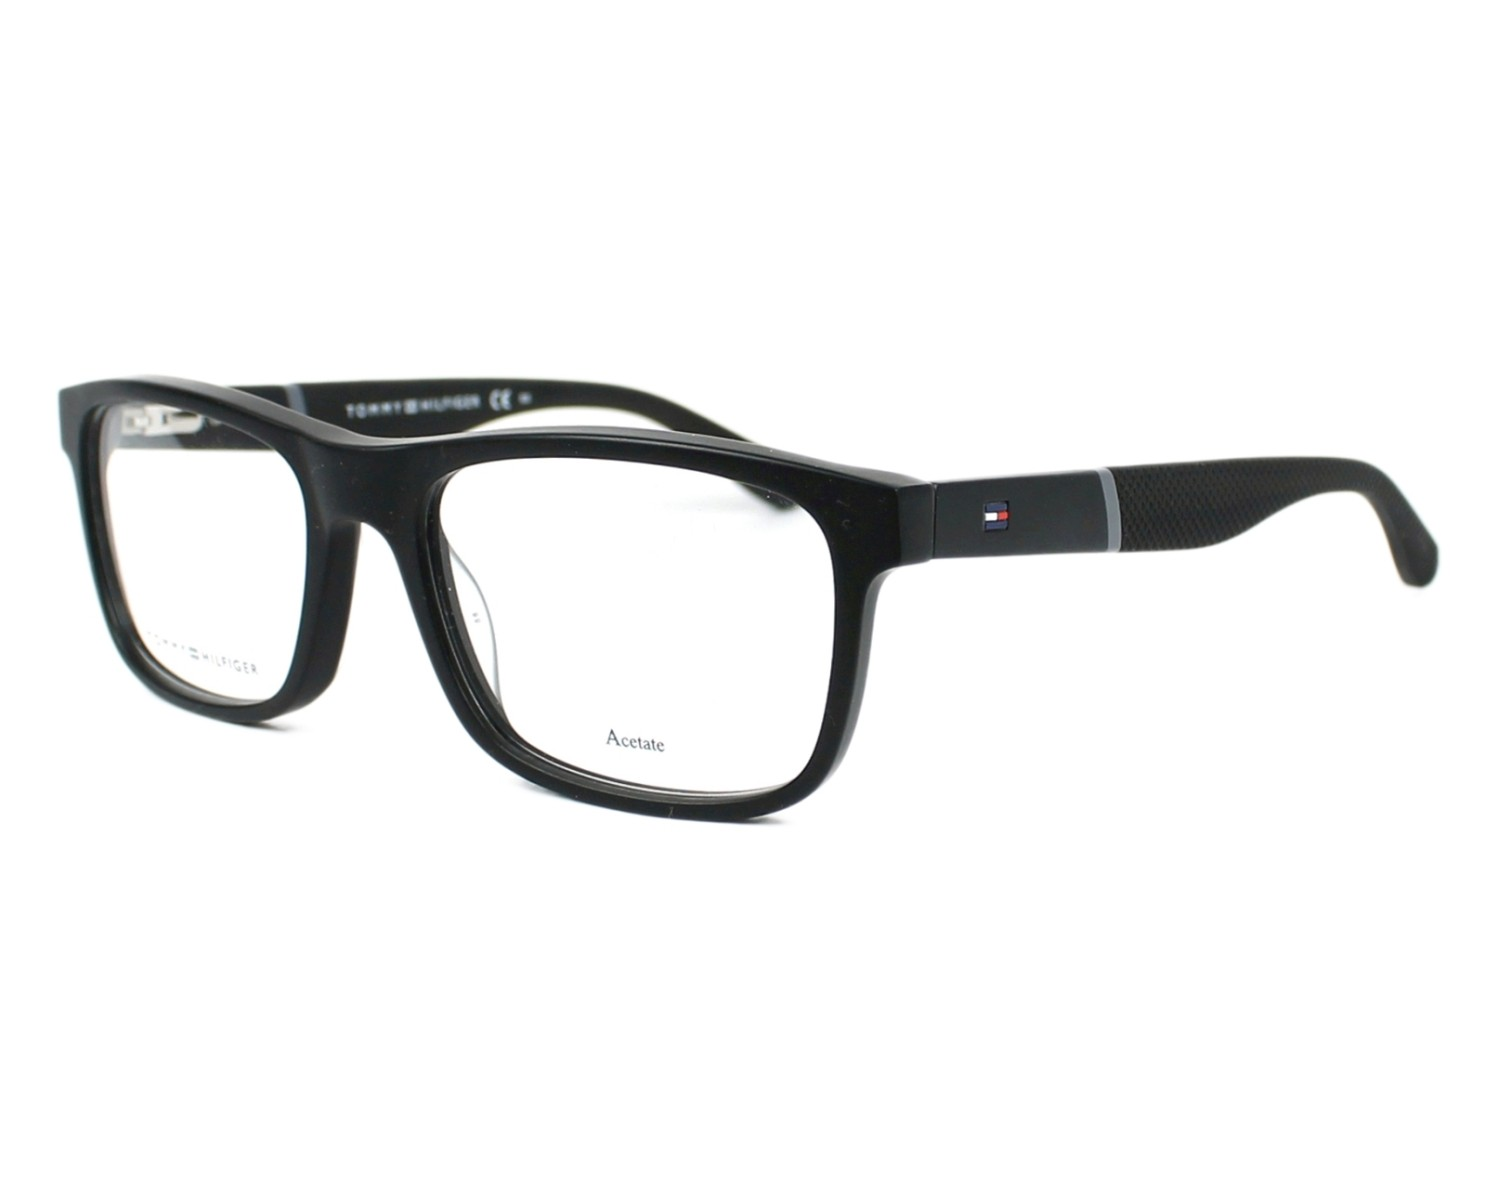 e9acf45c920 Tommy Hilfiger - Buy Tommy Hilfiger eyeglasses online at low prices